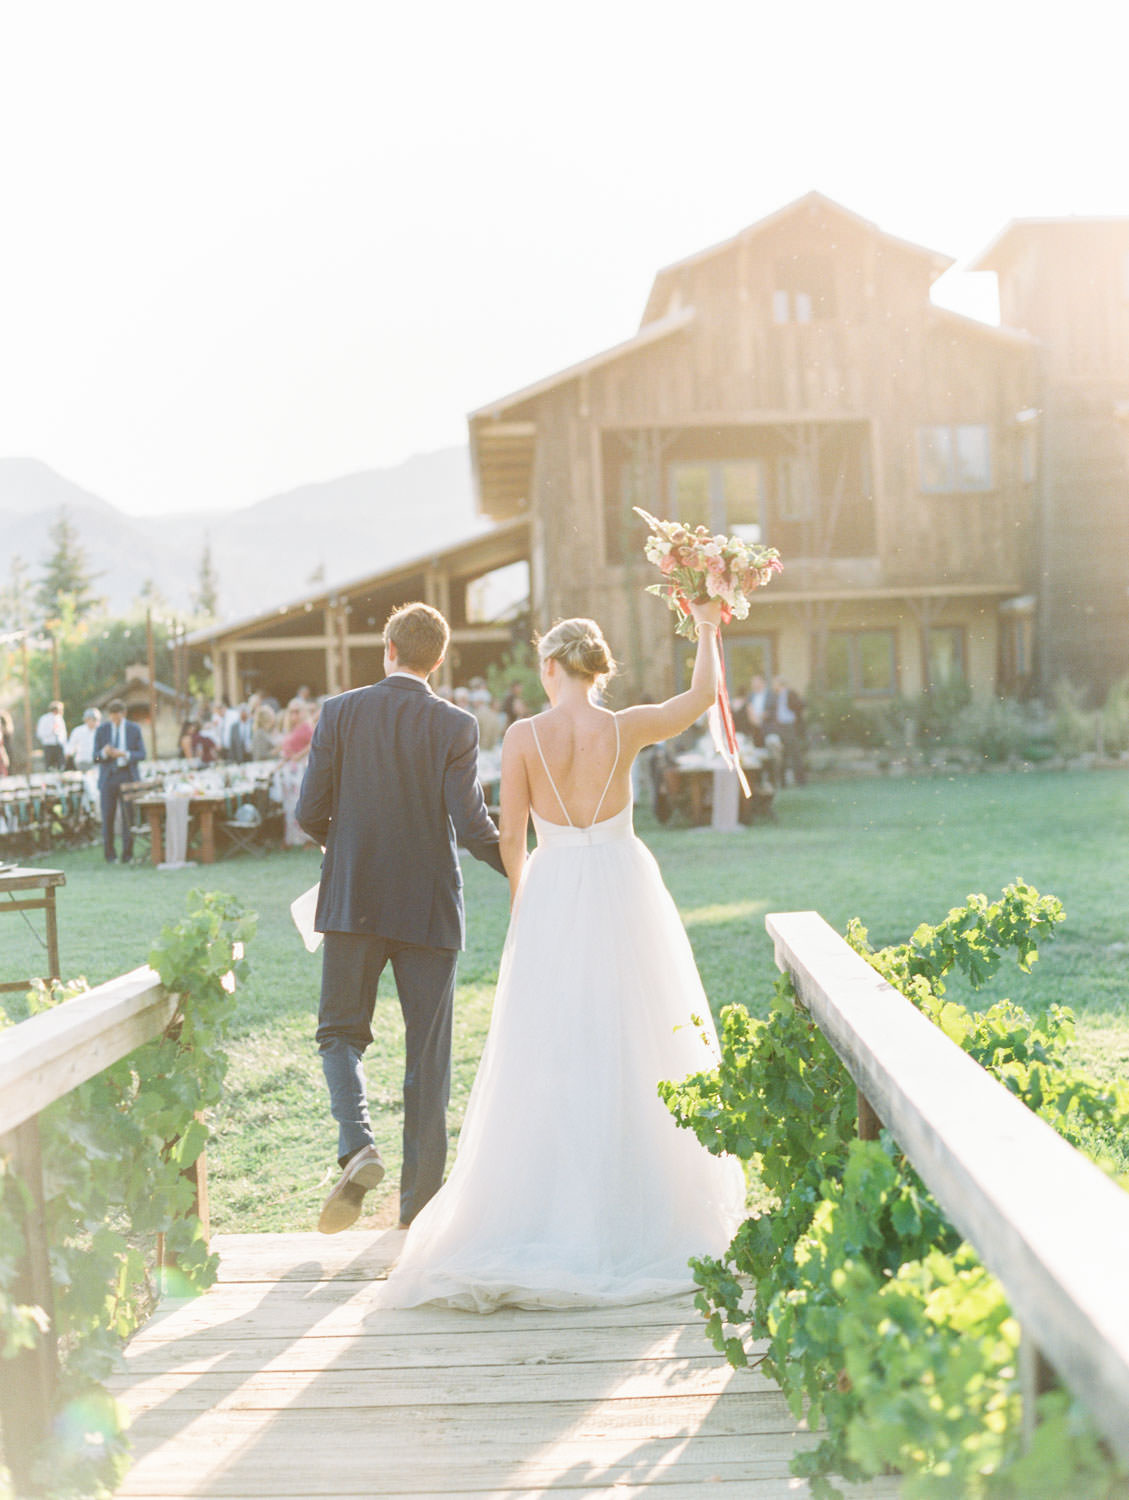 Groom and bride walking into their reception. Bride holding a colorful bouquet with ribbons by film photographer Cavin Elizabeth Photography